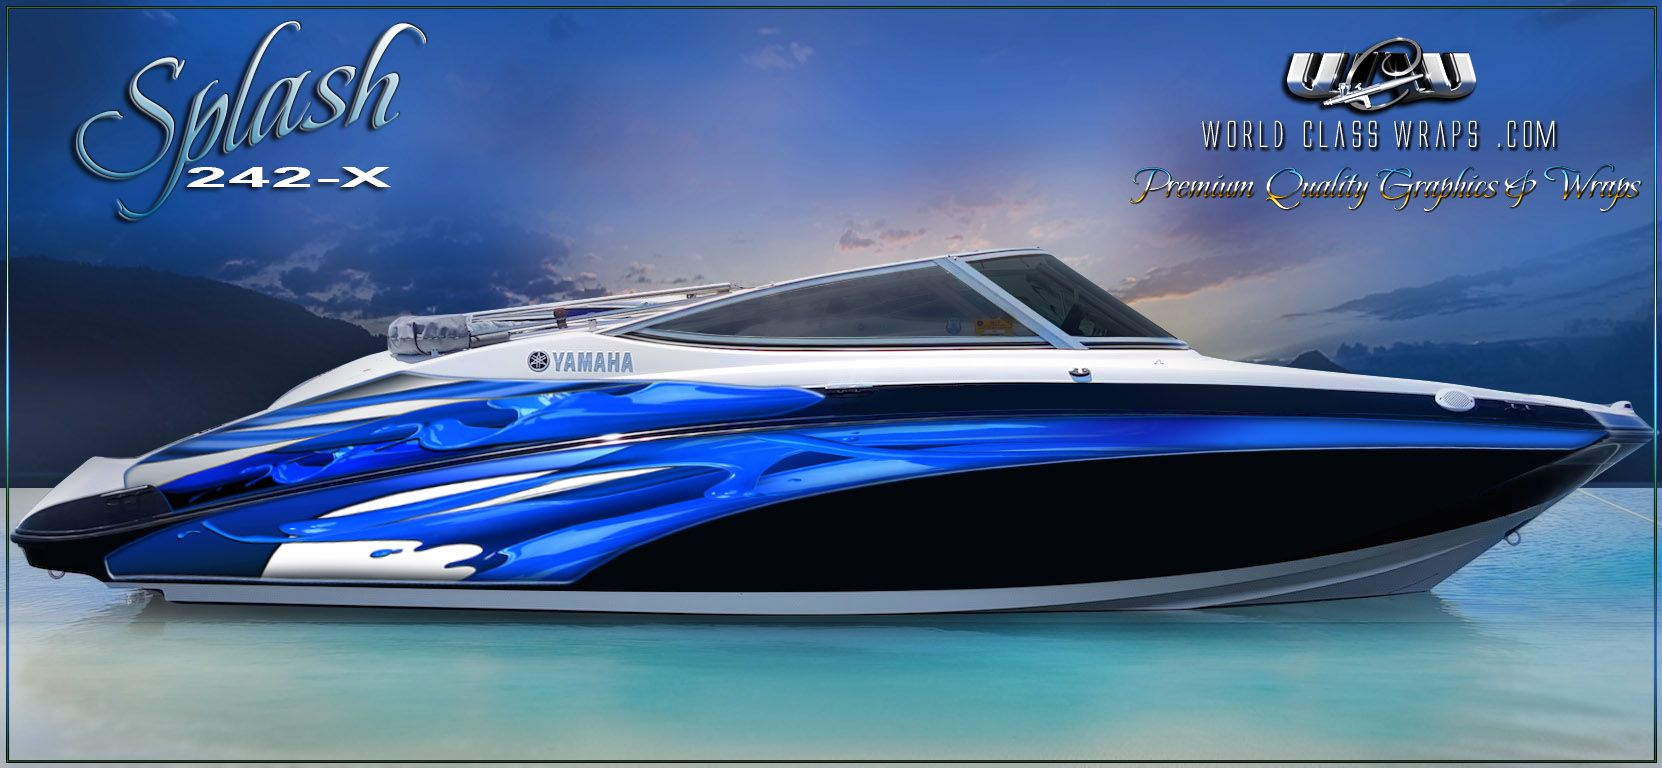 WrapJaxcom Maxim Boat Wrap Boat Wraps Pinterest Boat - Boat decalsboat graphics boat decals vinyl stickers for boats xtreme